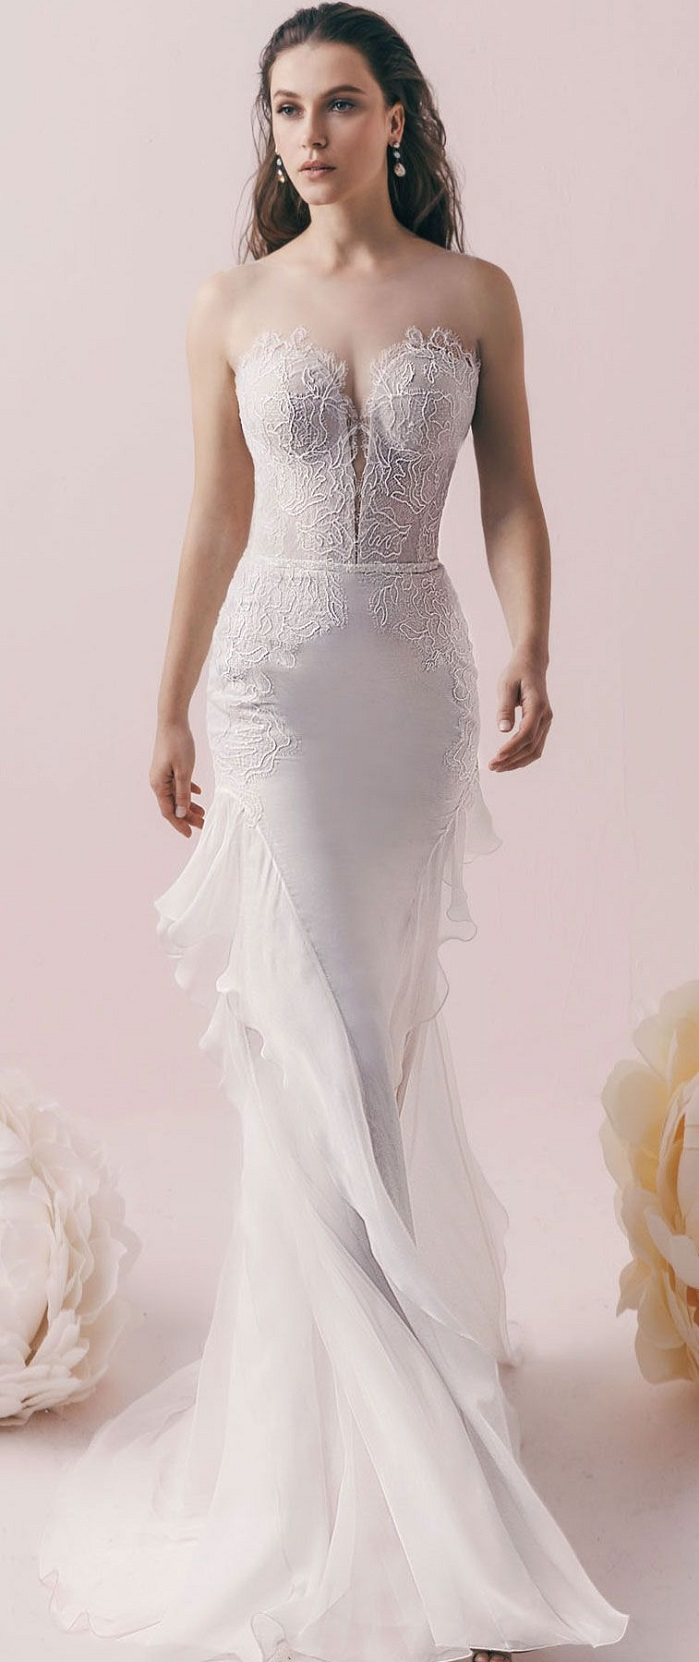 Illusion sweetheart neckline fit and flare wedding dress #wedding #weddingdress #bridedress #weddinggown #weddingdresses